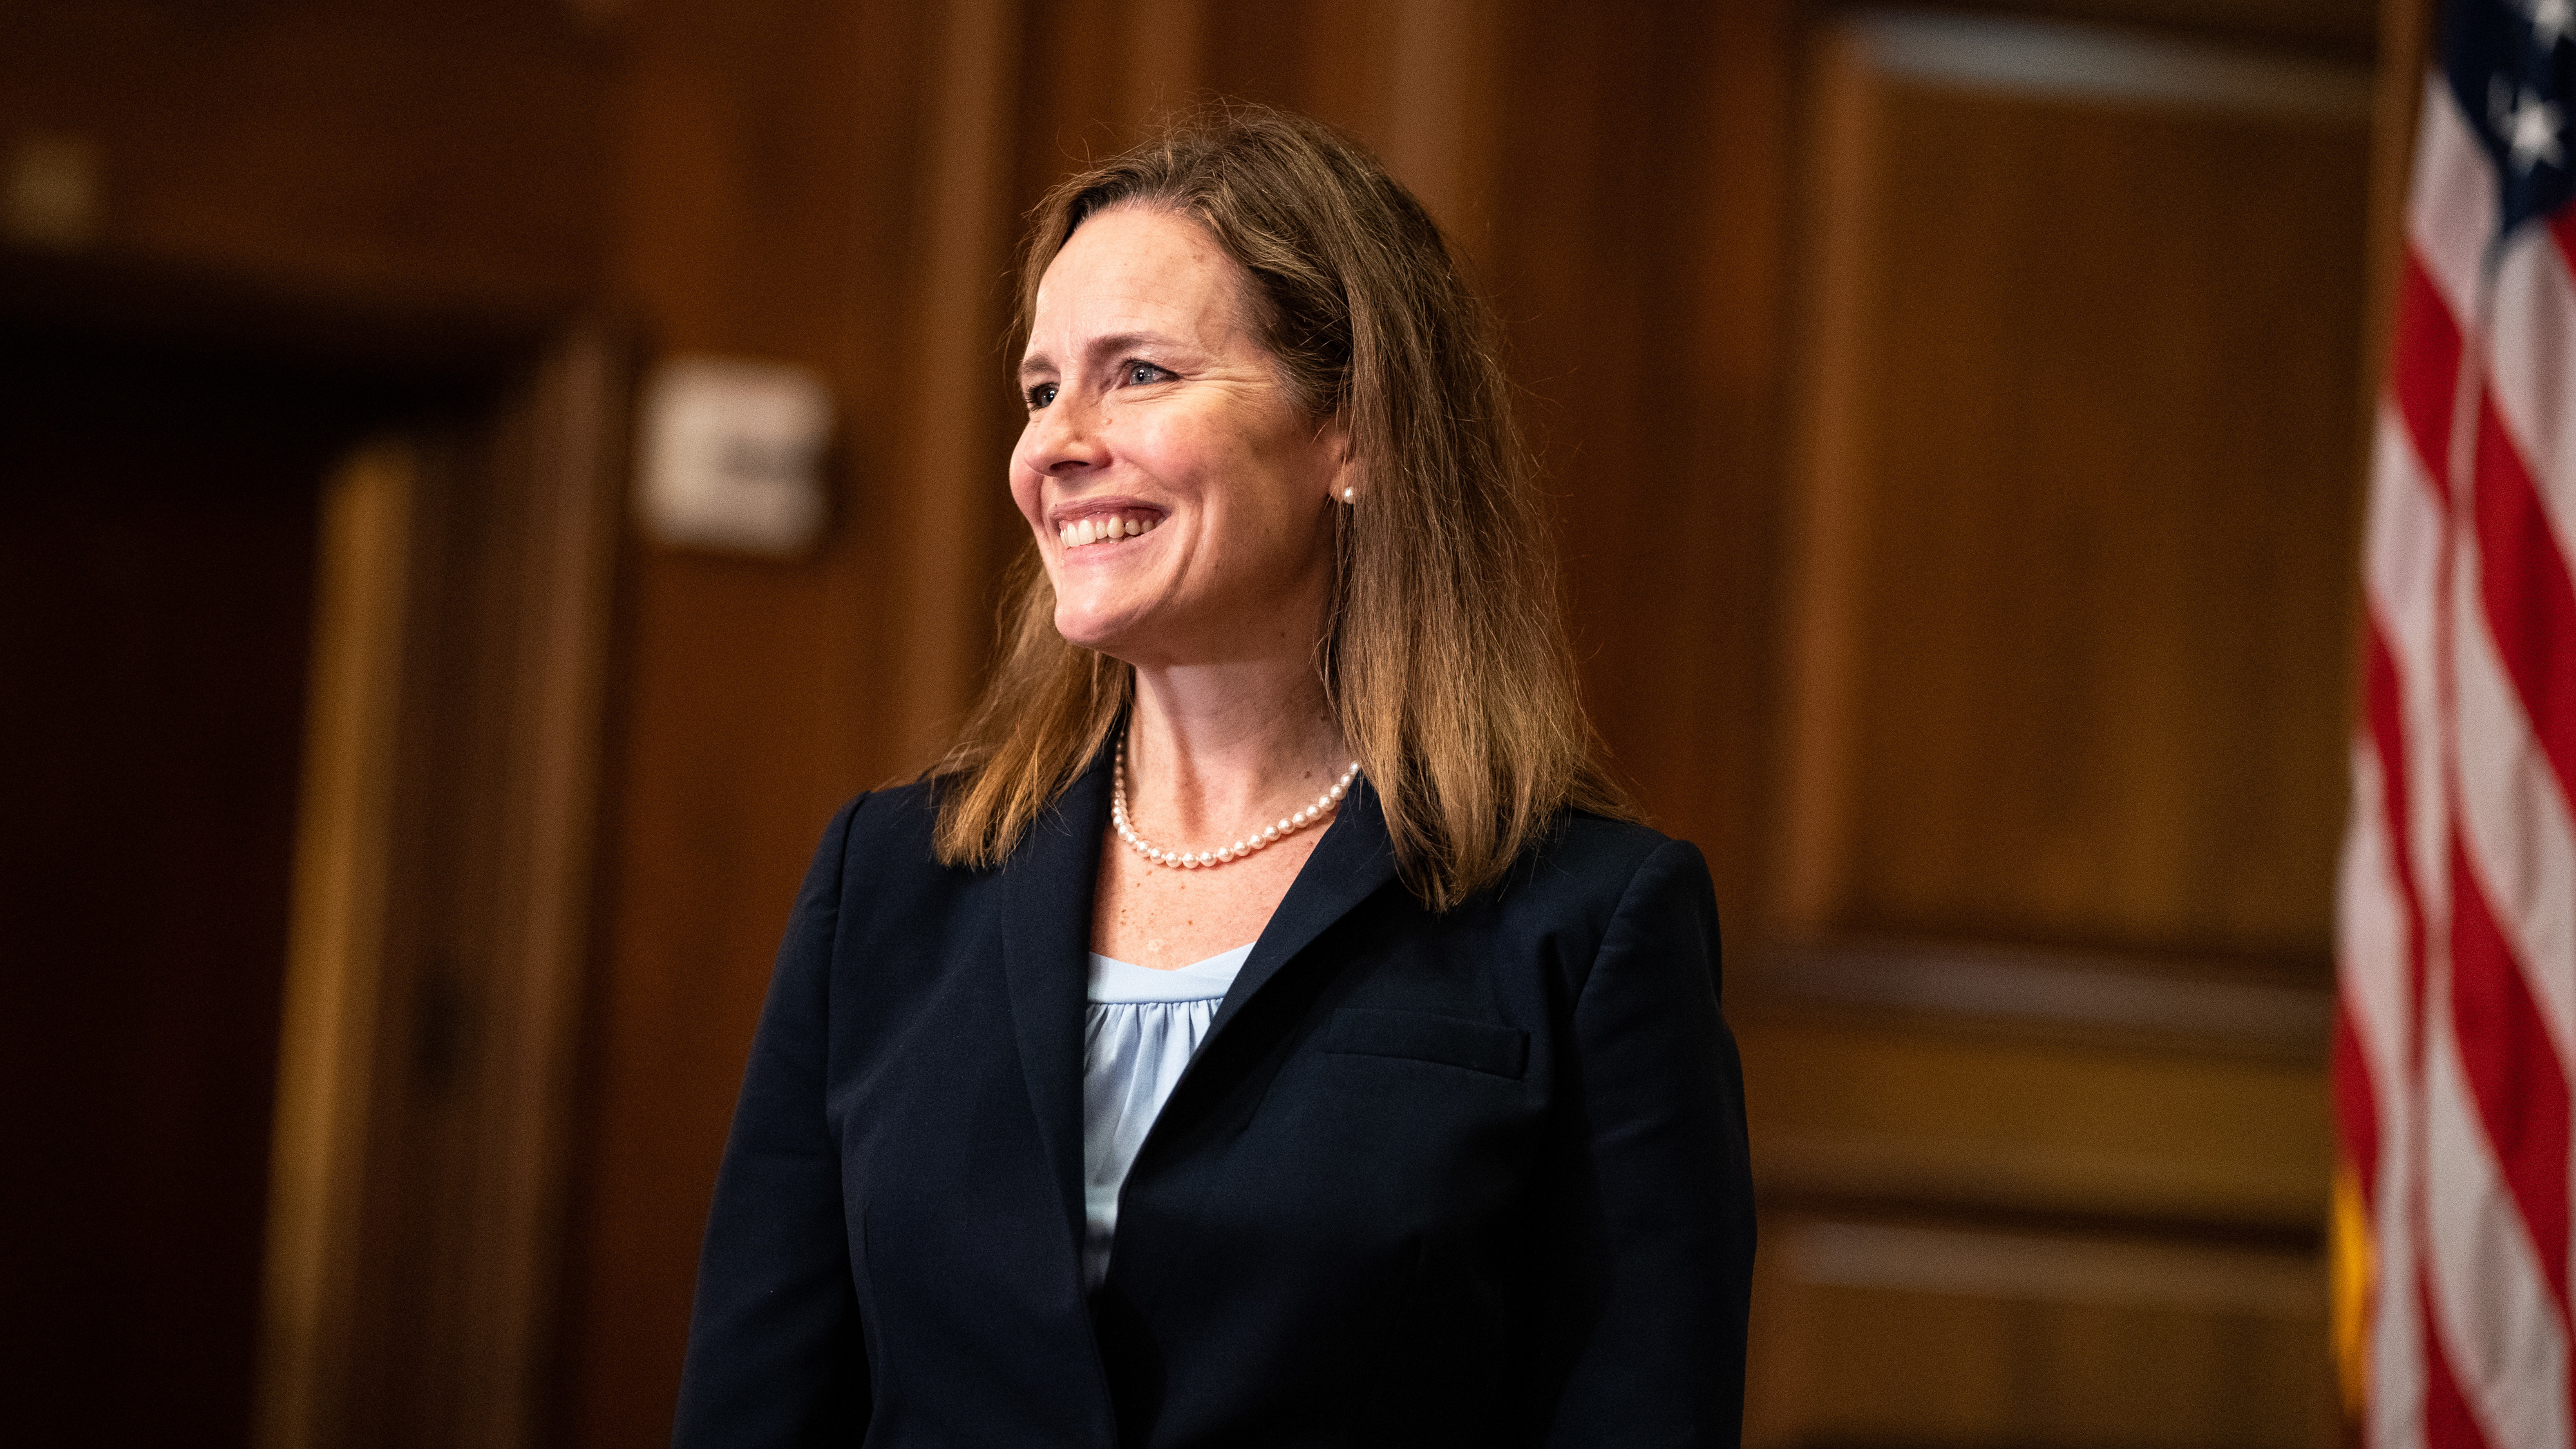 Judge Amy Coney Barrett, President Trump's nominee for the Supreme Court, is meeting with senators this week ahead of her confirmation hearing, which is set to start on Oct. 12.